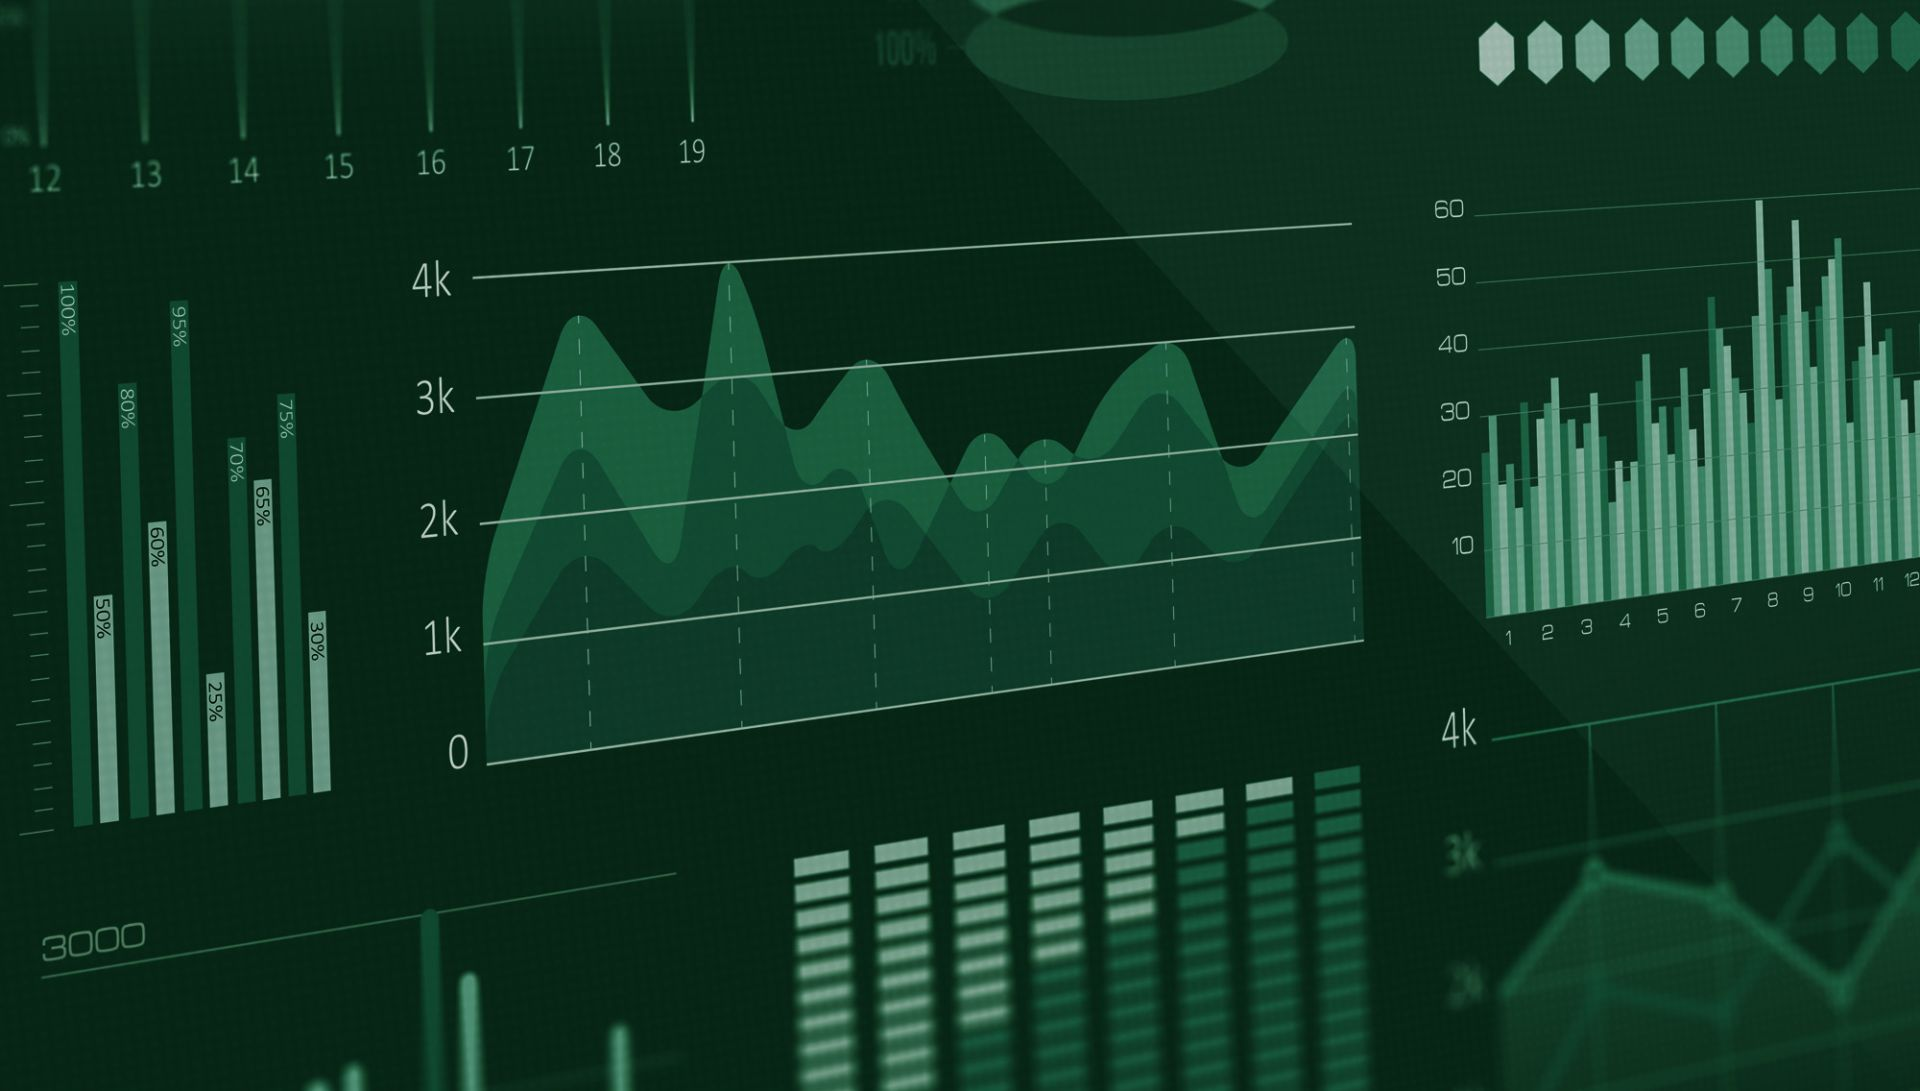 Image of analytics on a display